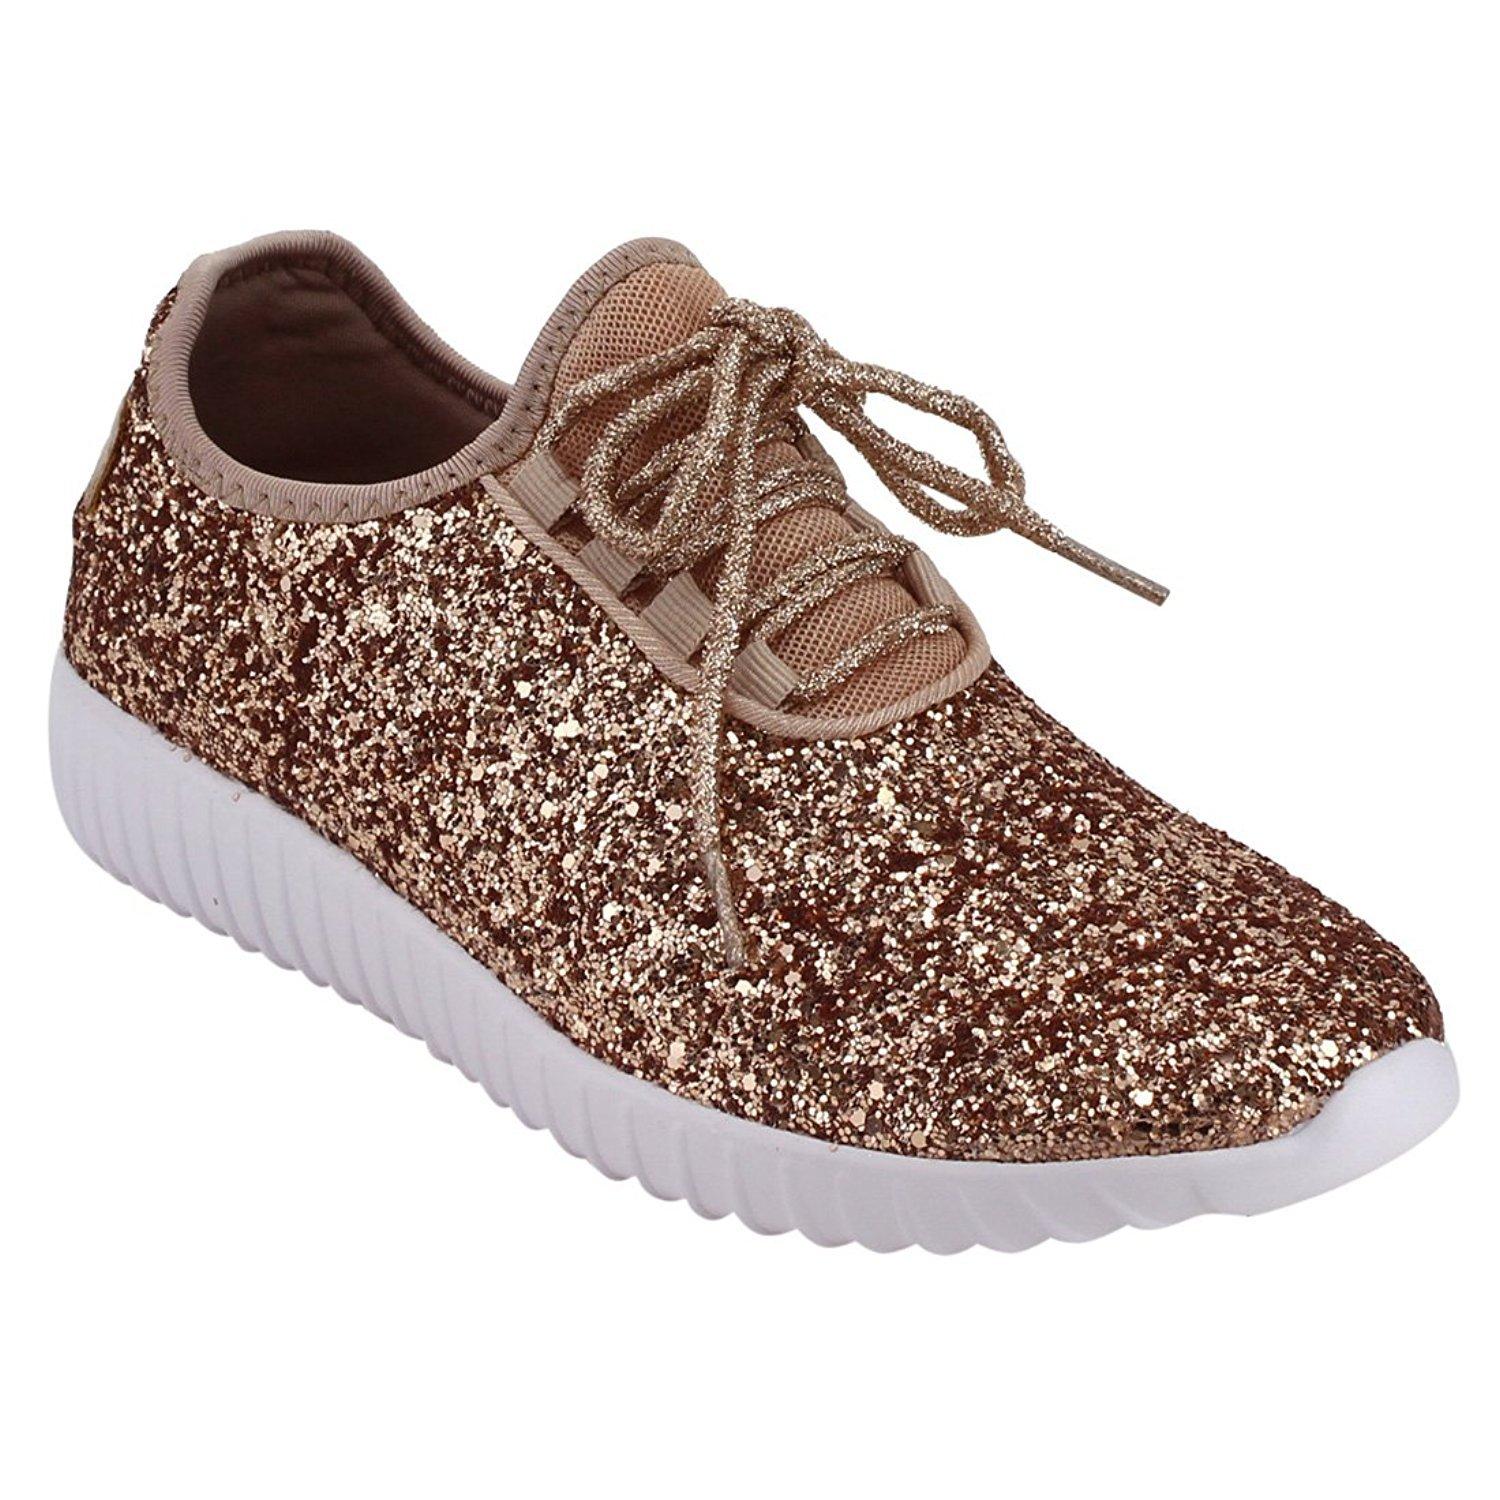 Forever Link Women's REMY-18 Glitter Fashion Sneakers Rosegold 9